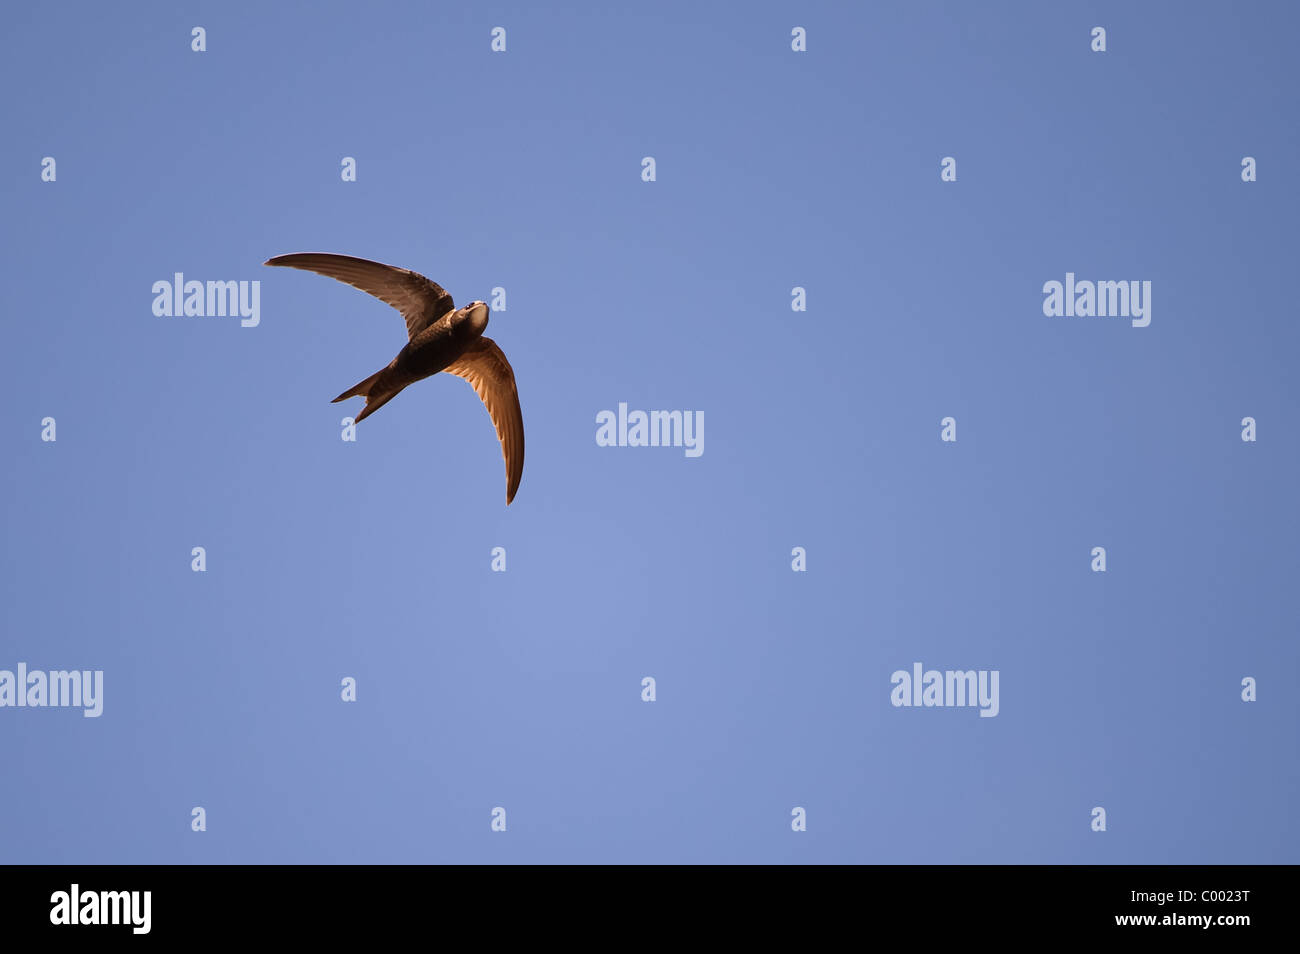 flying common swift or black martin Apus apus - Stock Image